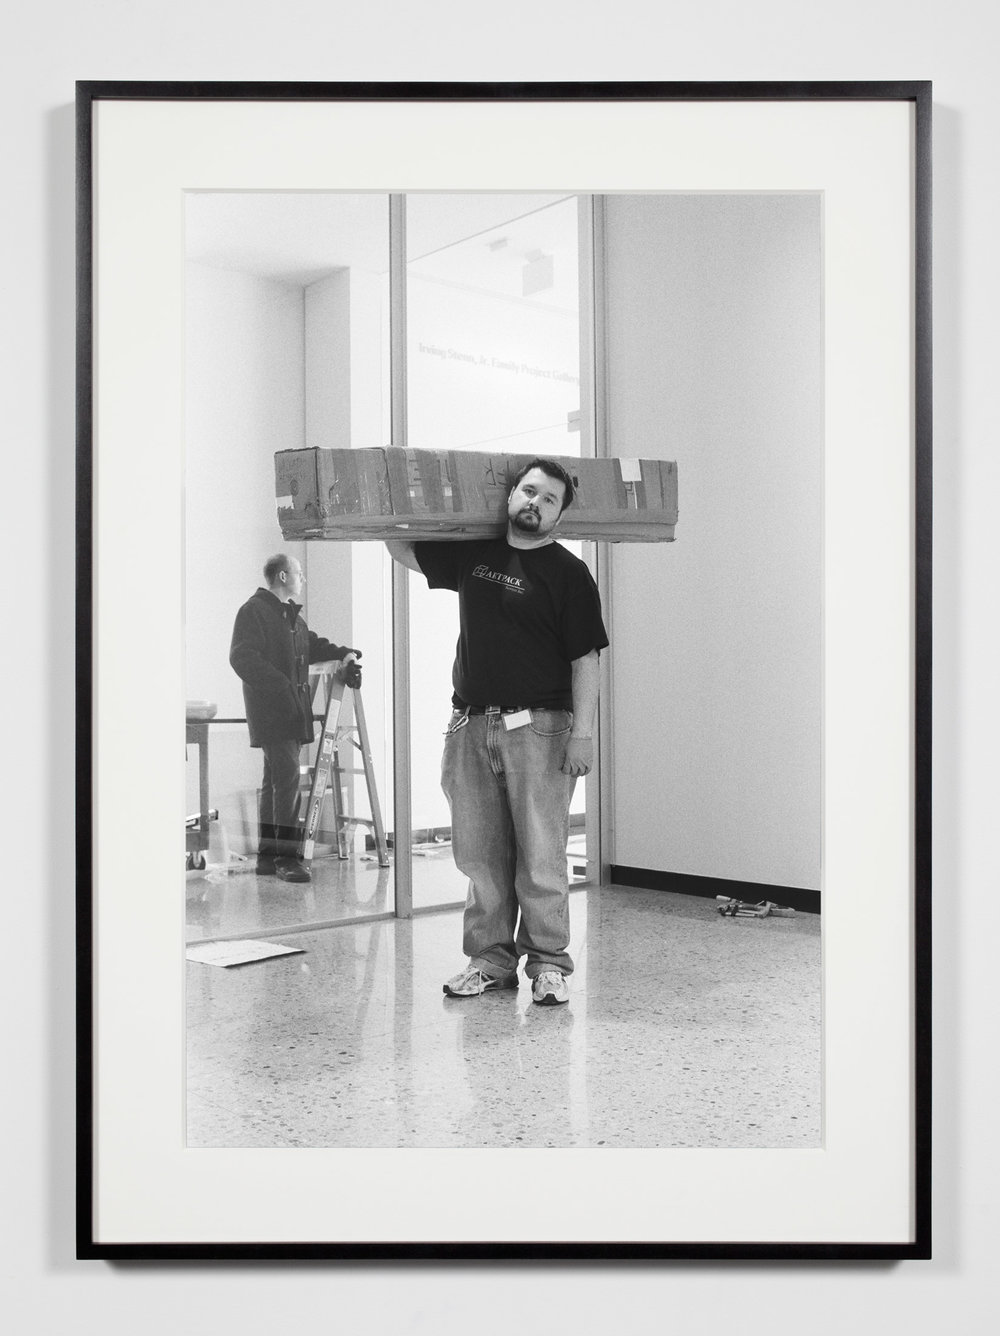 University Museum Preparator, Ann Arbor, Michigan, March 27, 2009   2011  Epson Ultrachrome K3 archival ink jet print on Hahnemühle Photo Rag paper  36 3/8 x 26 3/8 inches   Industrial Portraits, 2008–    A Diagram of Forces, 2011